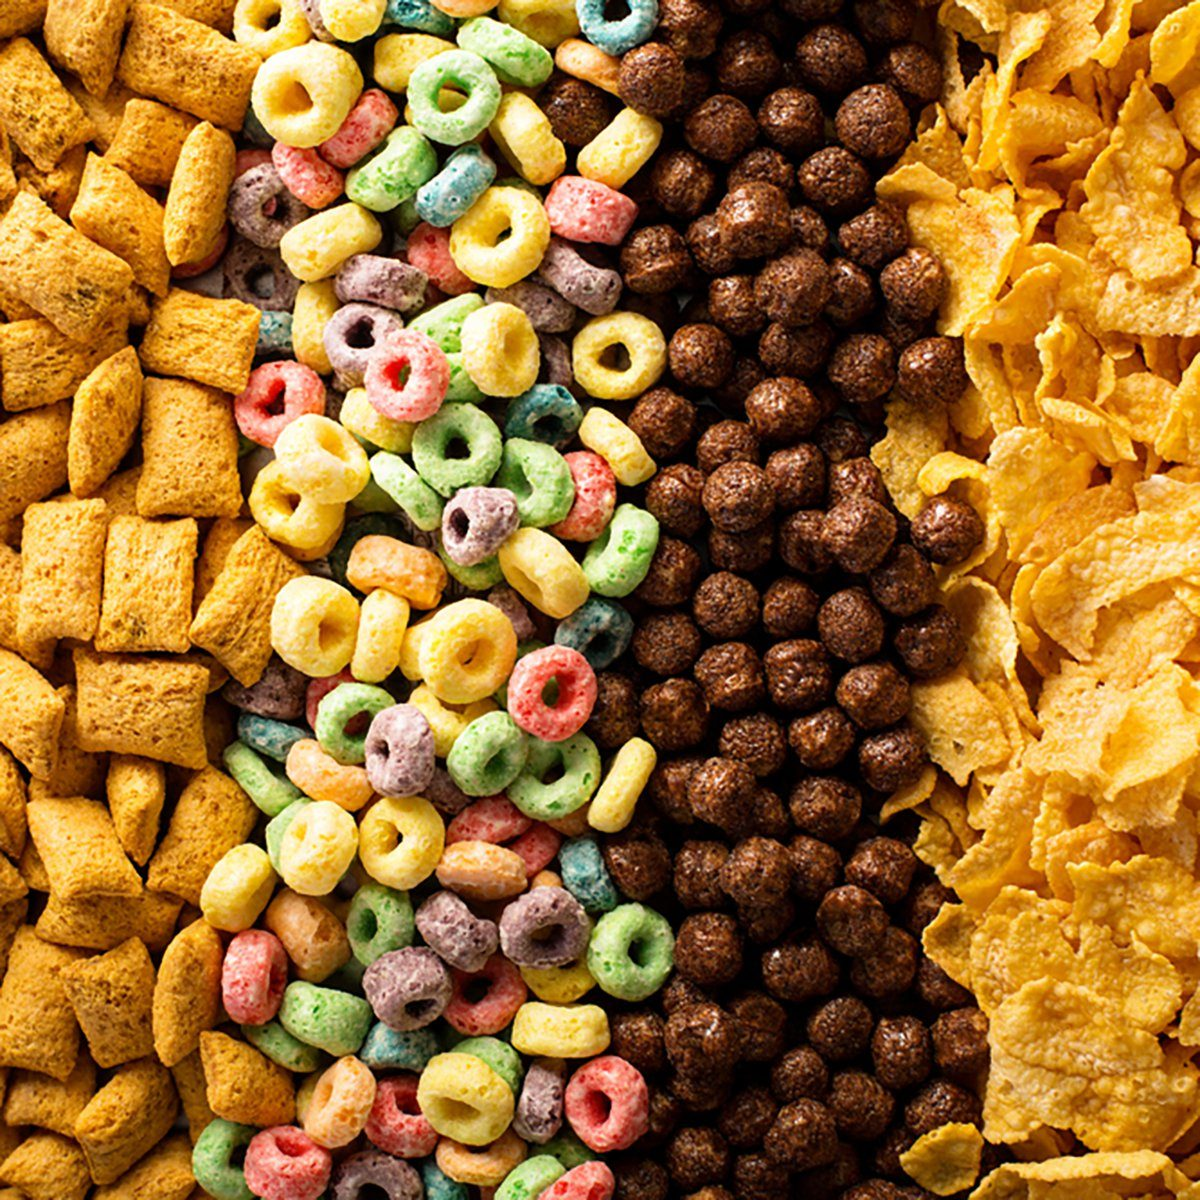 Variety of cold cereals, quick breakfast for kids